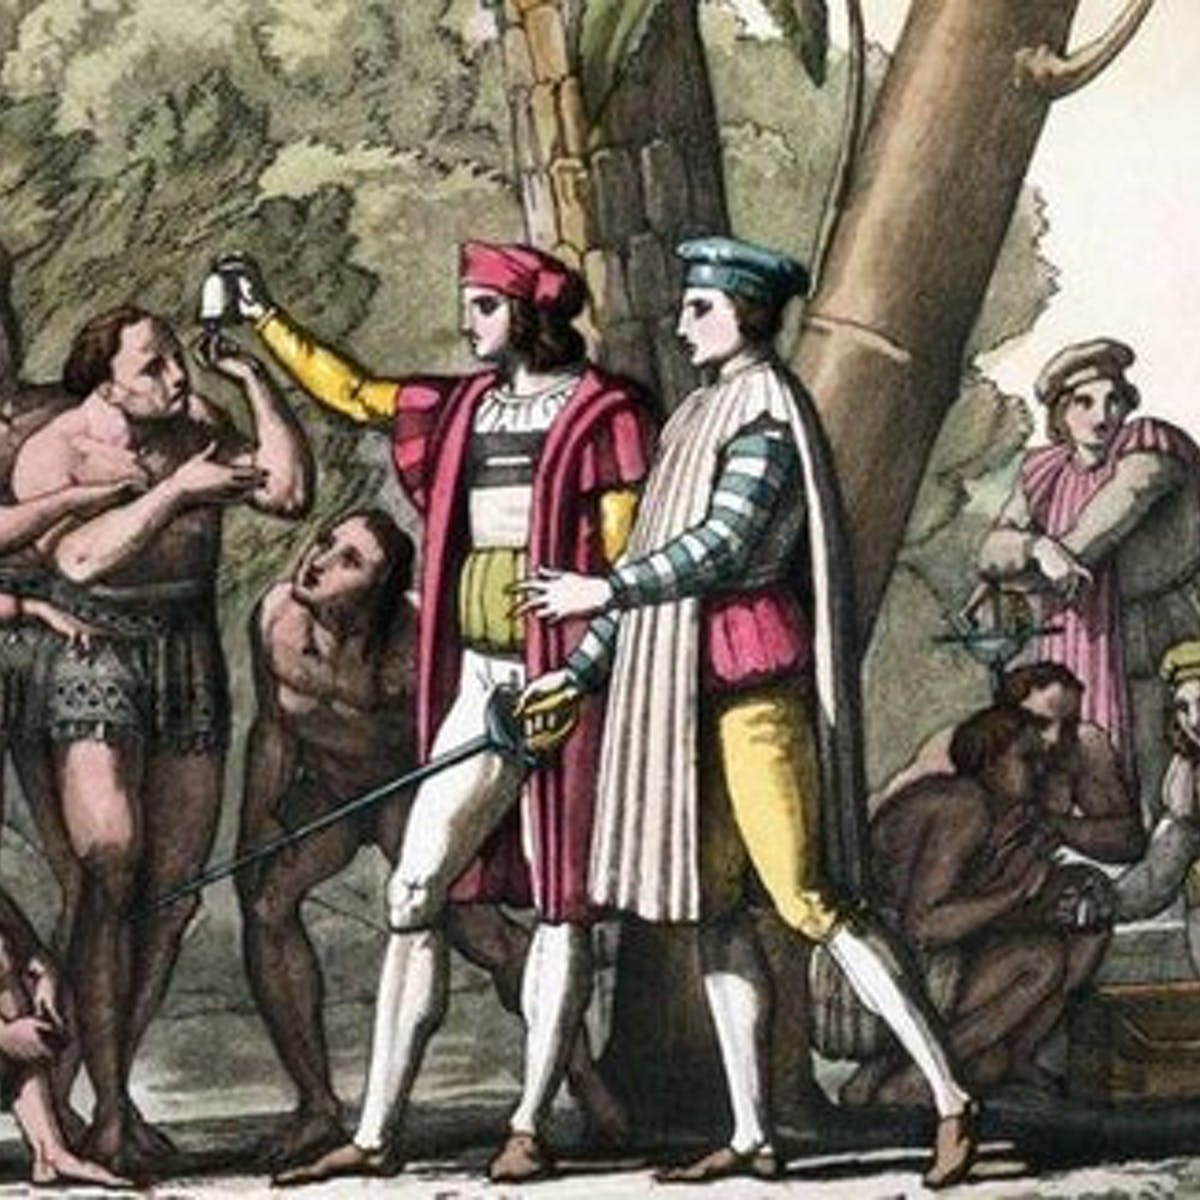 Inverse Daily: What do anti-vaxxers and Christopher Columbus have in common